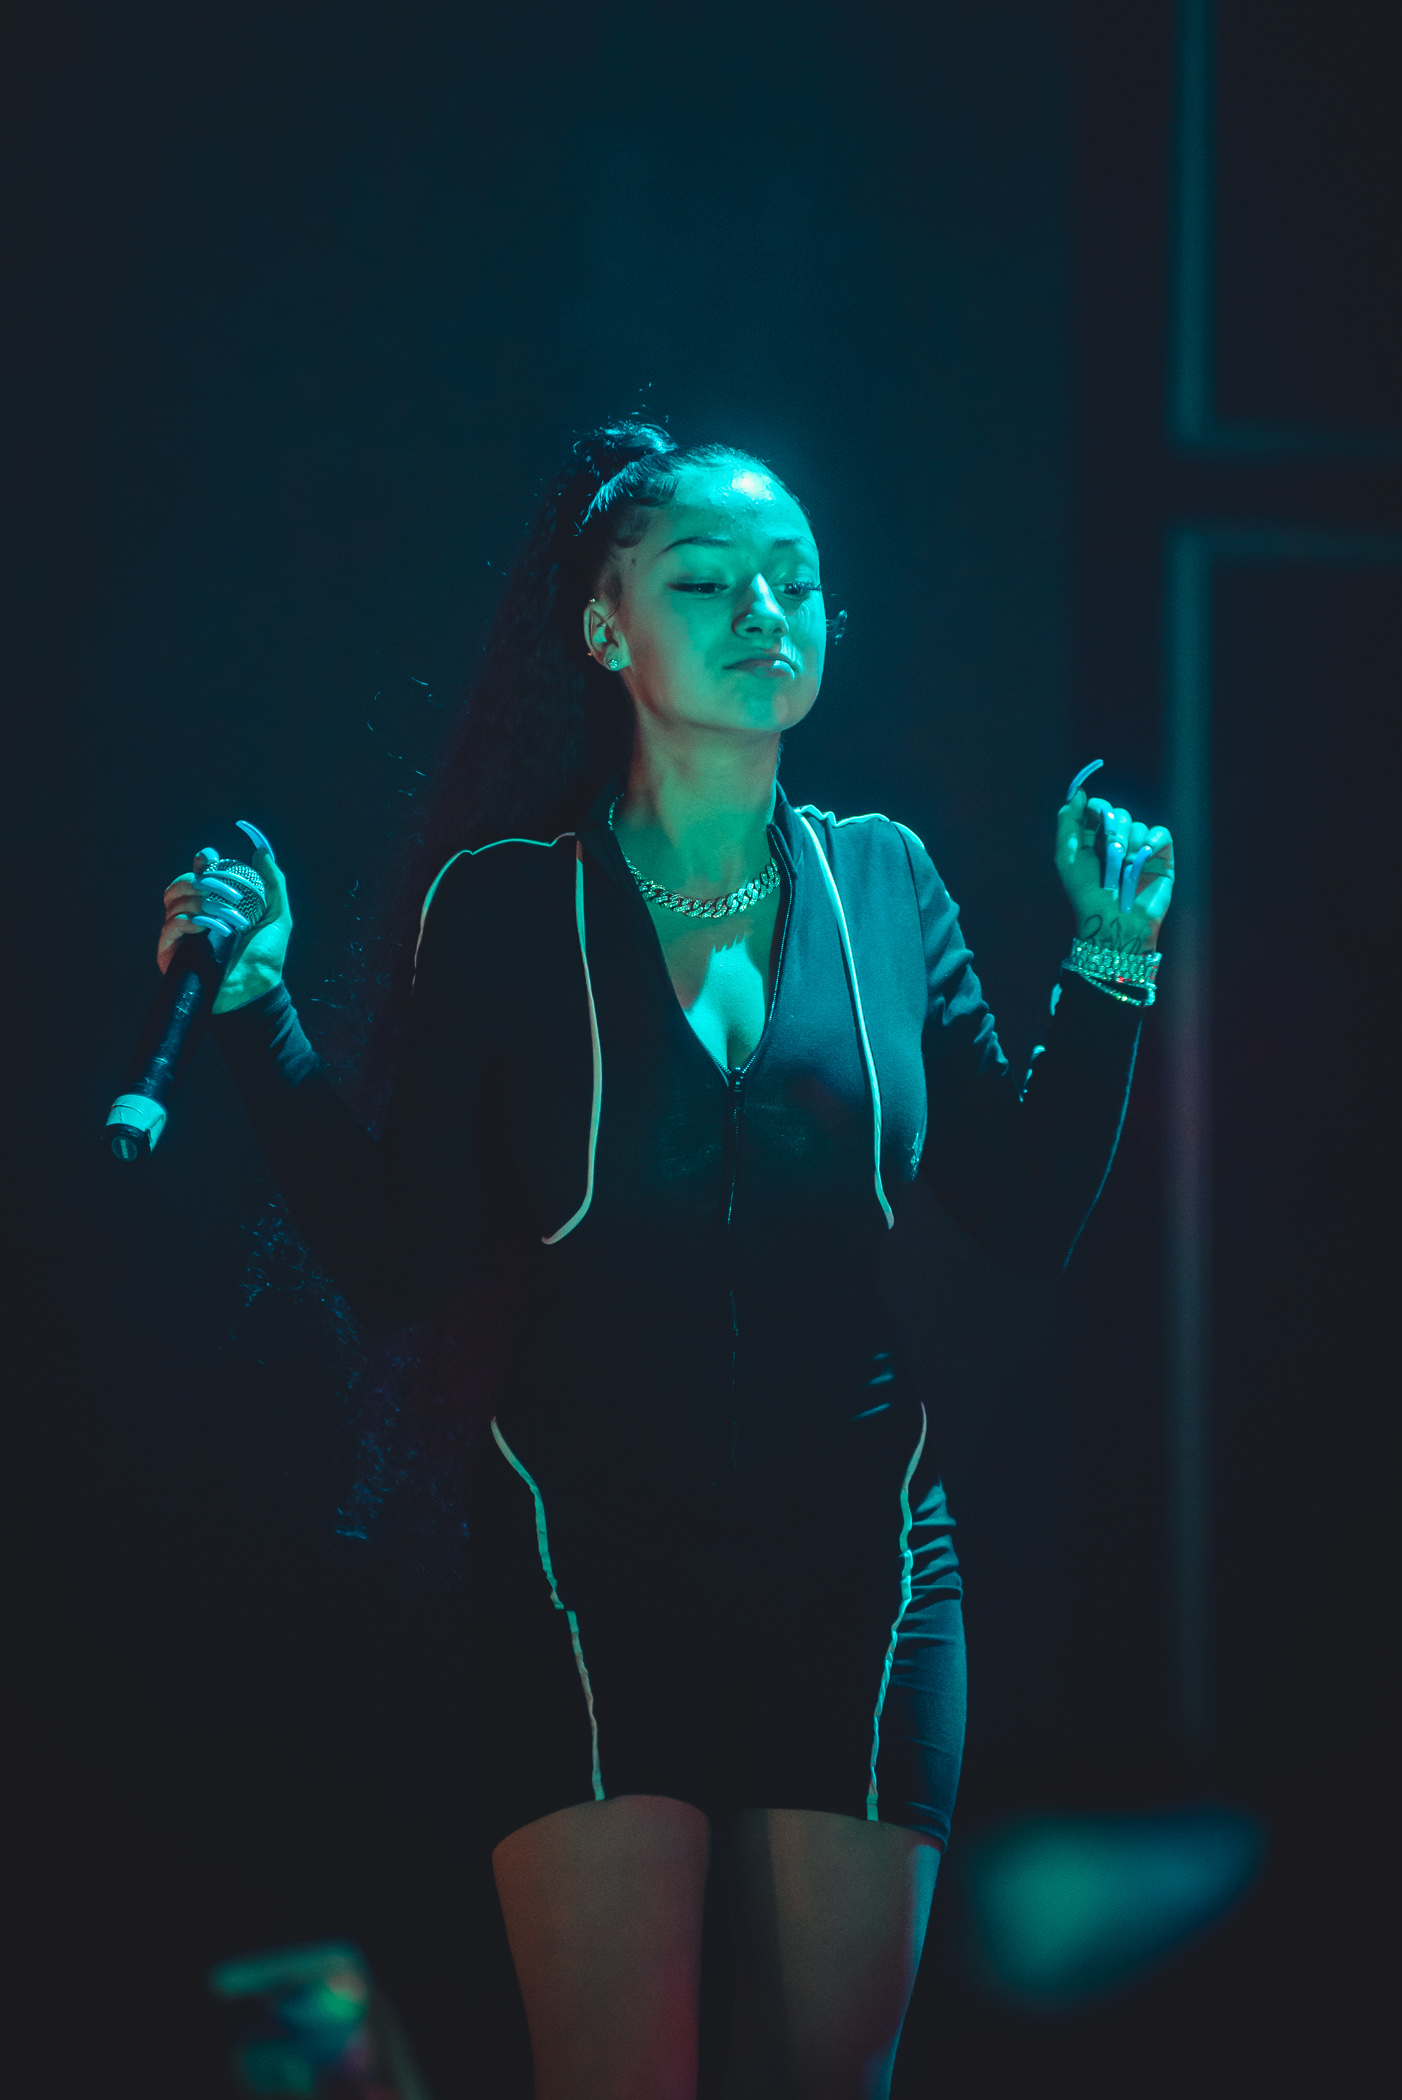 1_Bhad_Bhabie-VENUE-Timothy_Nguyen-20190510 (17 of 45).JPG